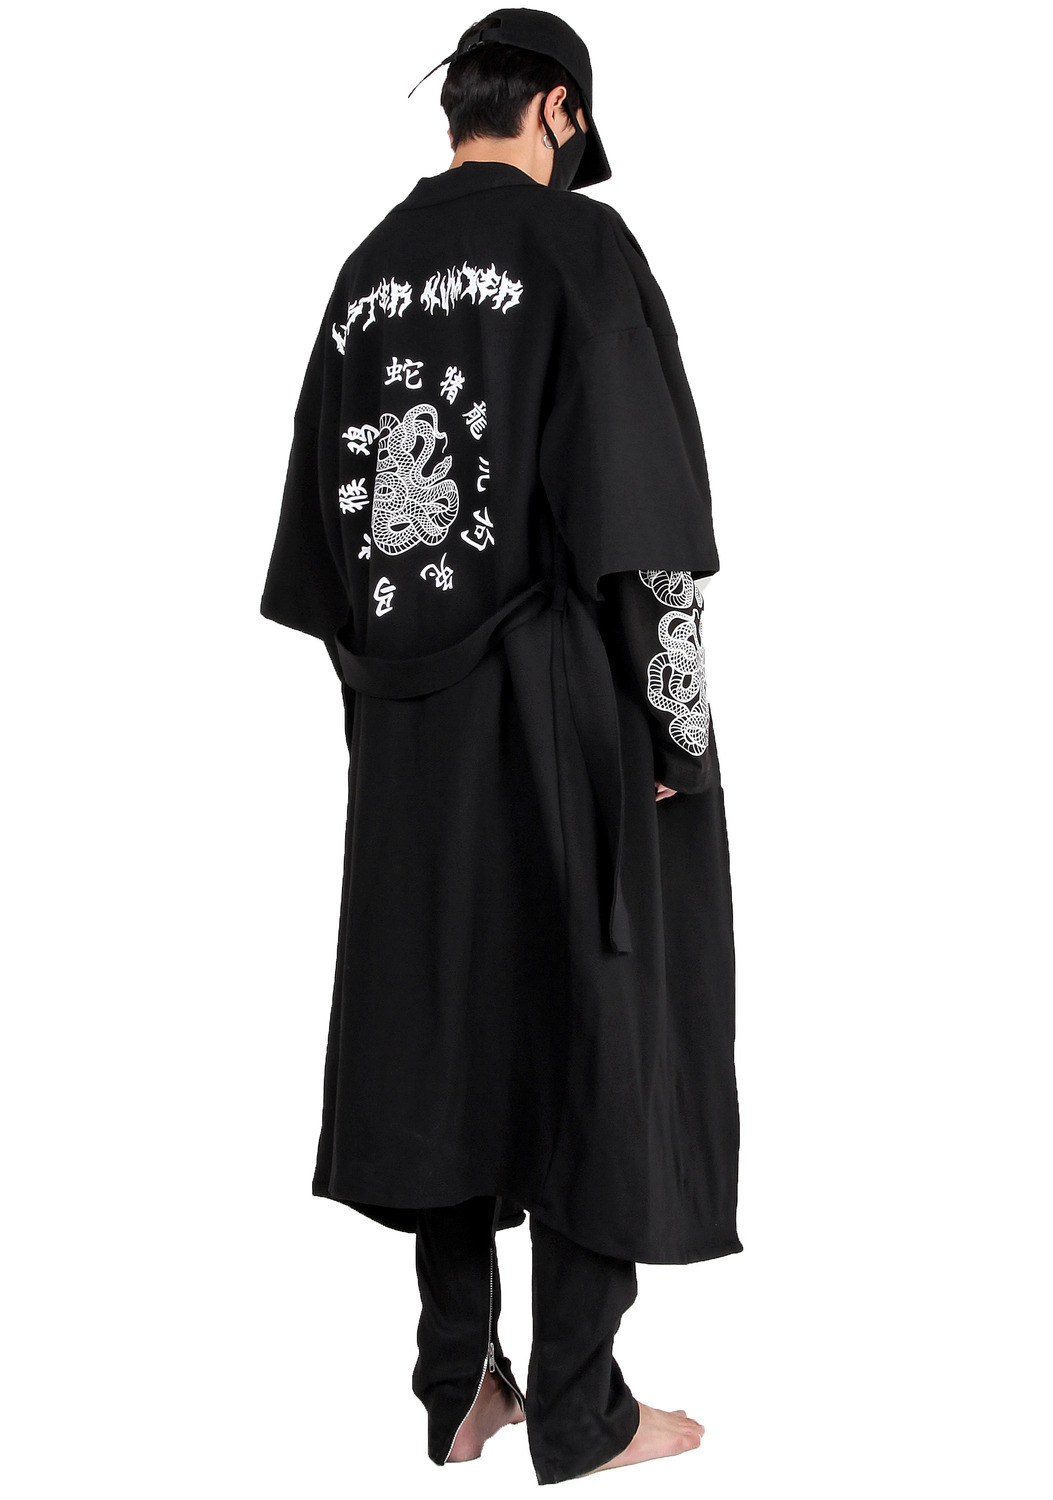 SNAKE BLACK TATTOO LETTERING LONG ROBE COAT